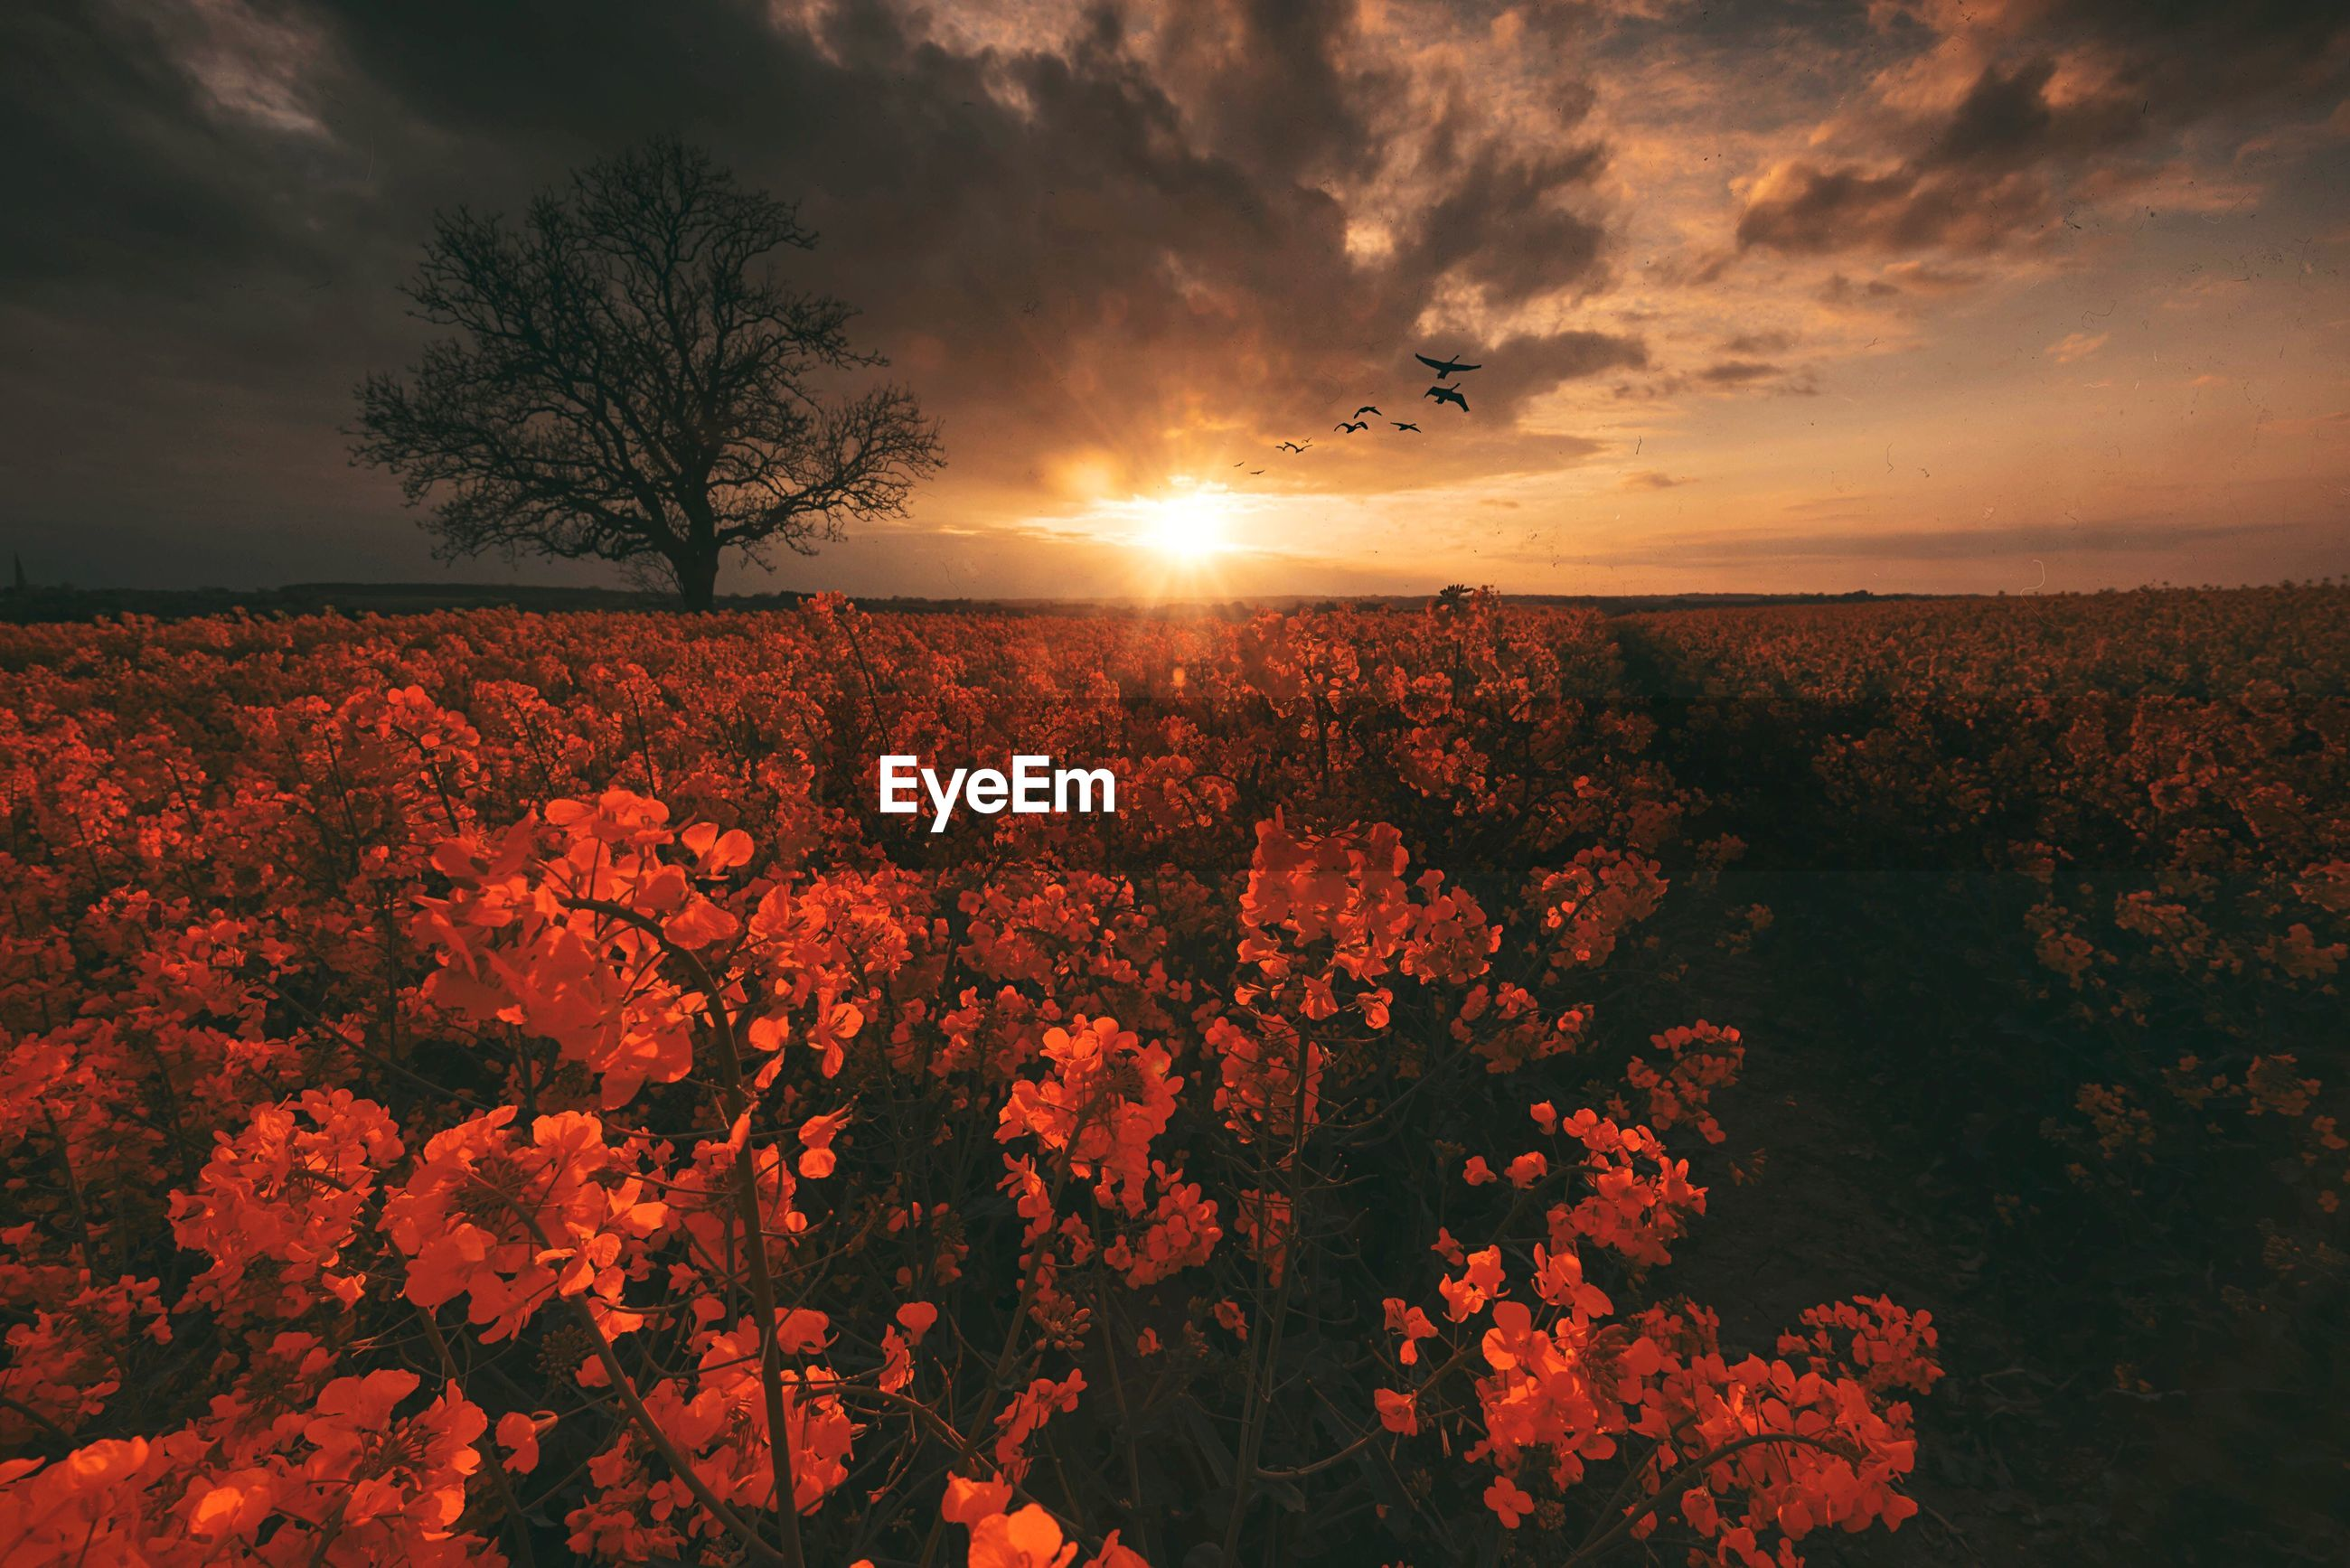 Flowers growing on field against sky at sunset